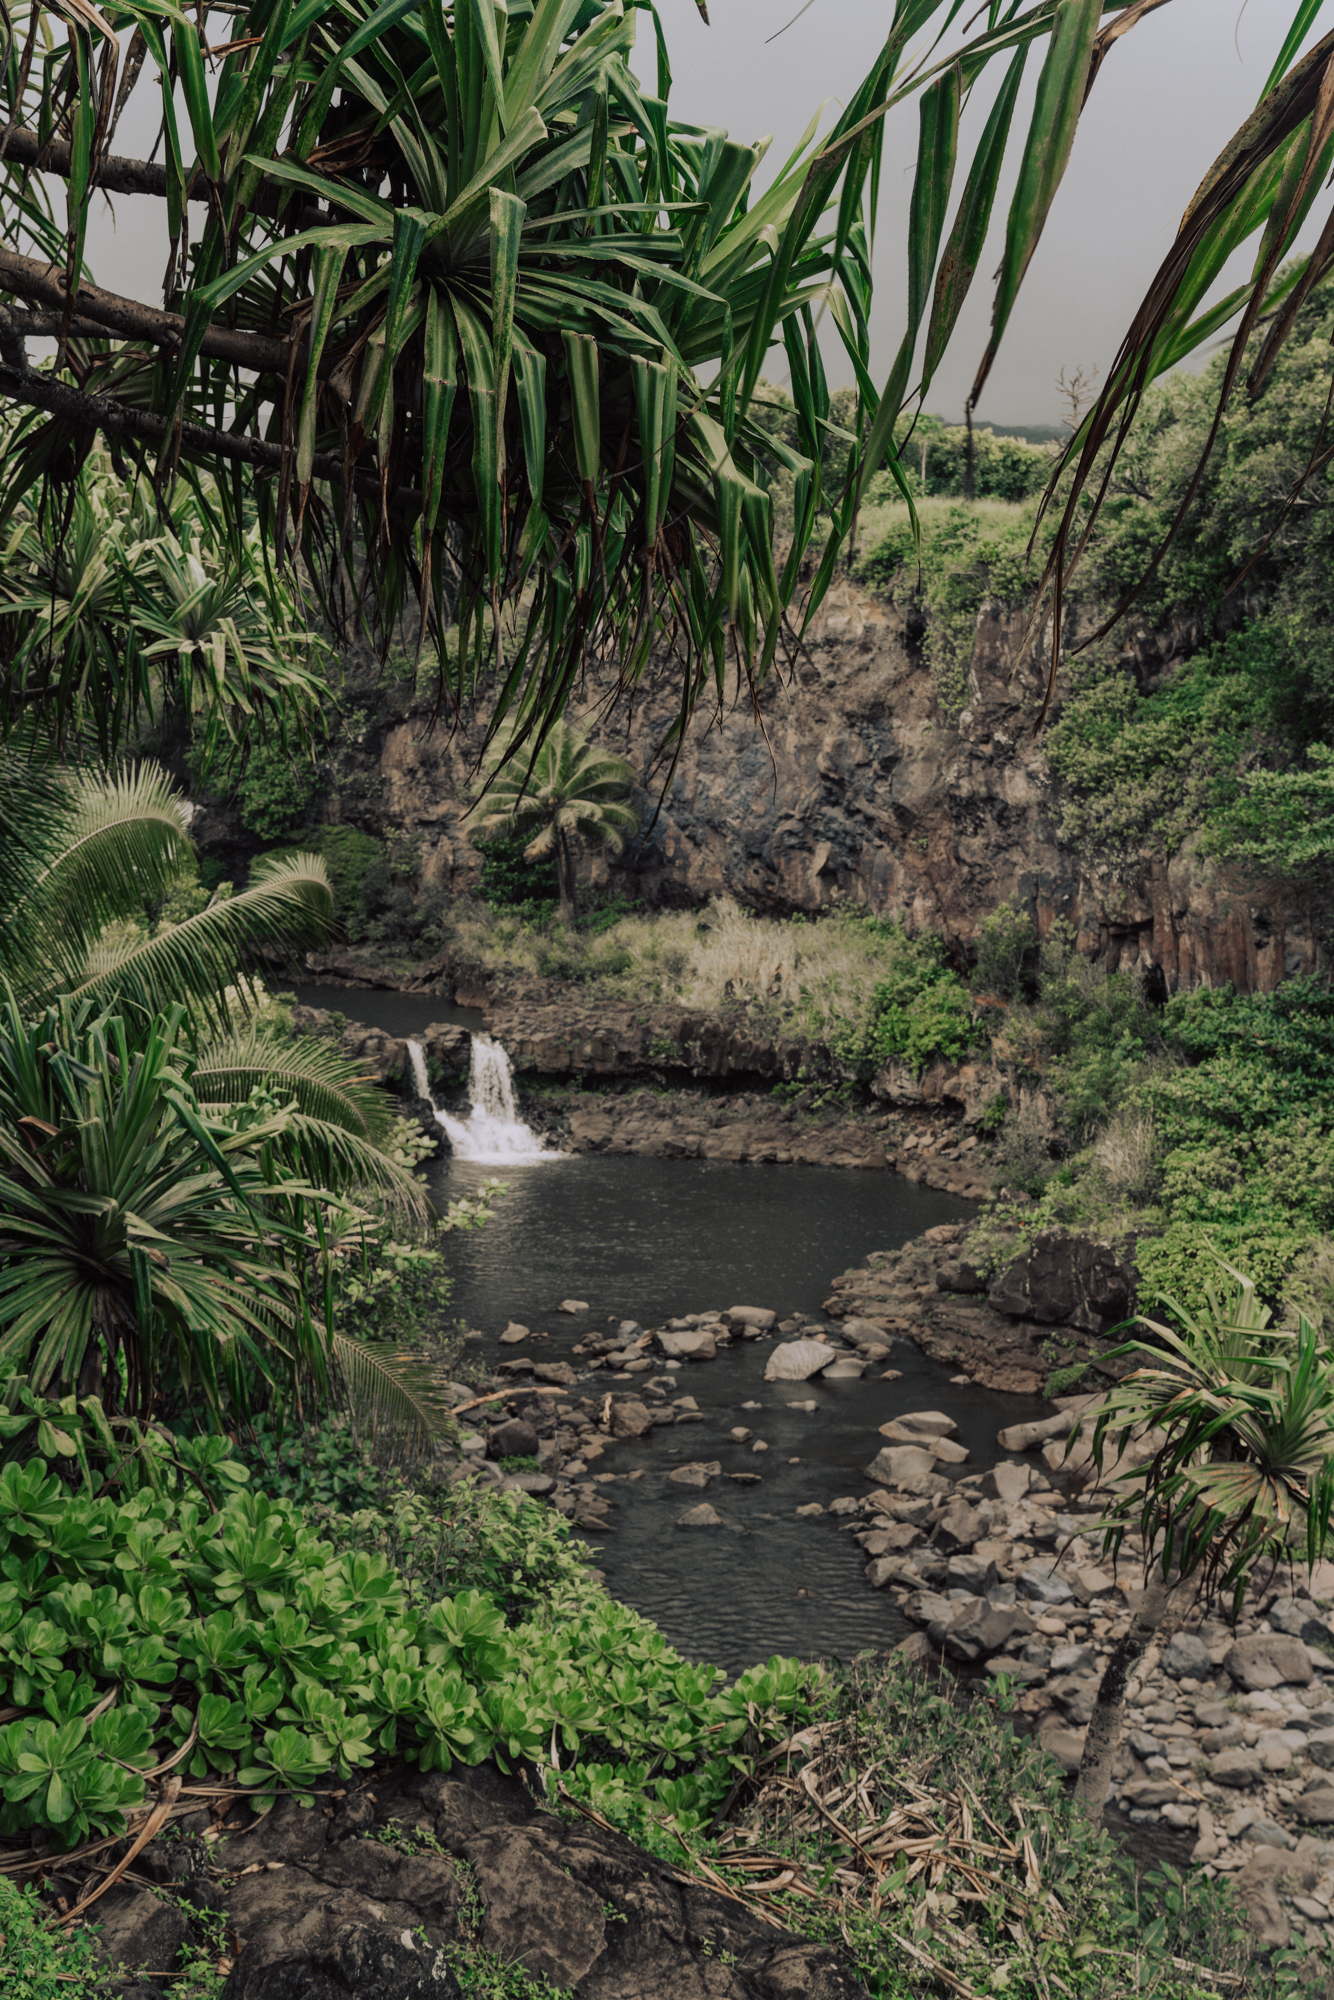 Water fall photo in a tropical setting with palm trees